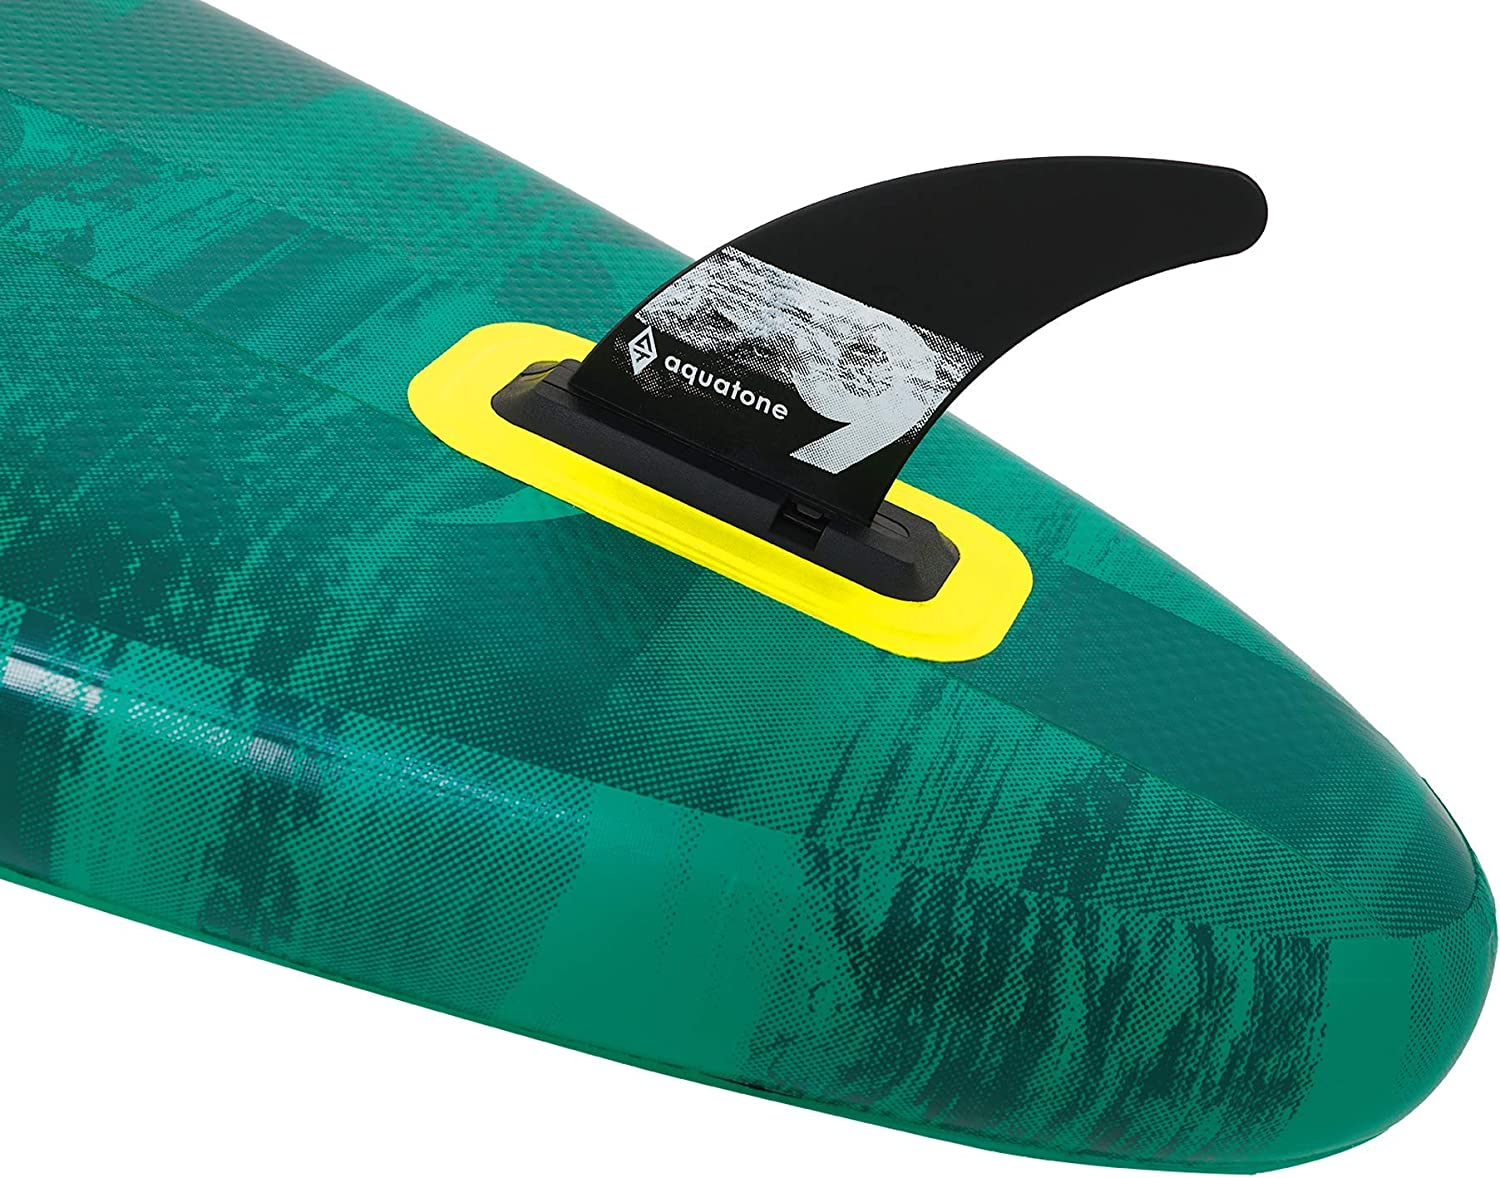 Stand up Paddle 366x81x15 Aztron Aquatone Wave plus 12.0 Isup Inflatable Surfboard